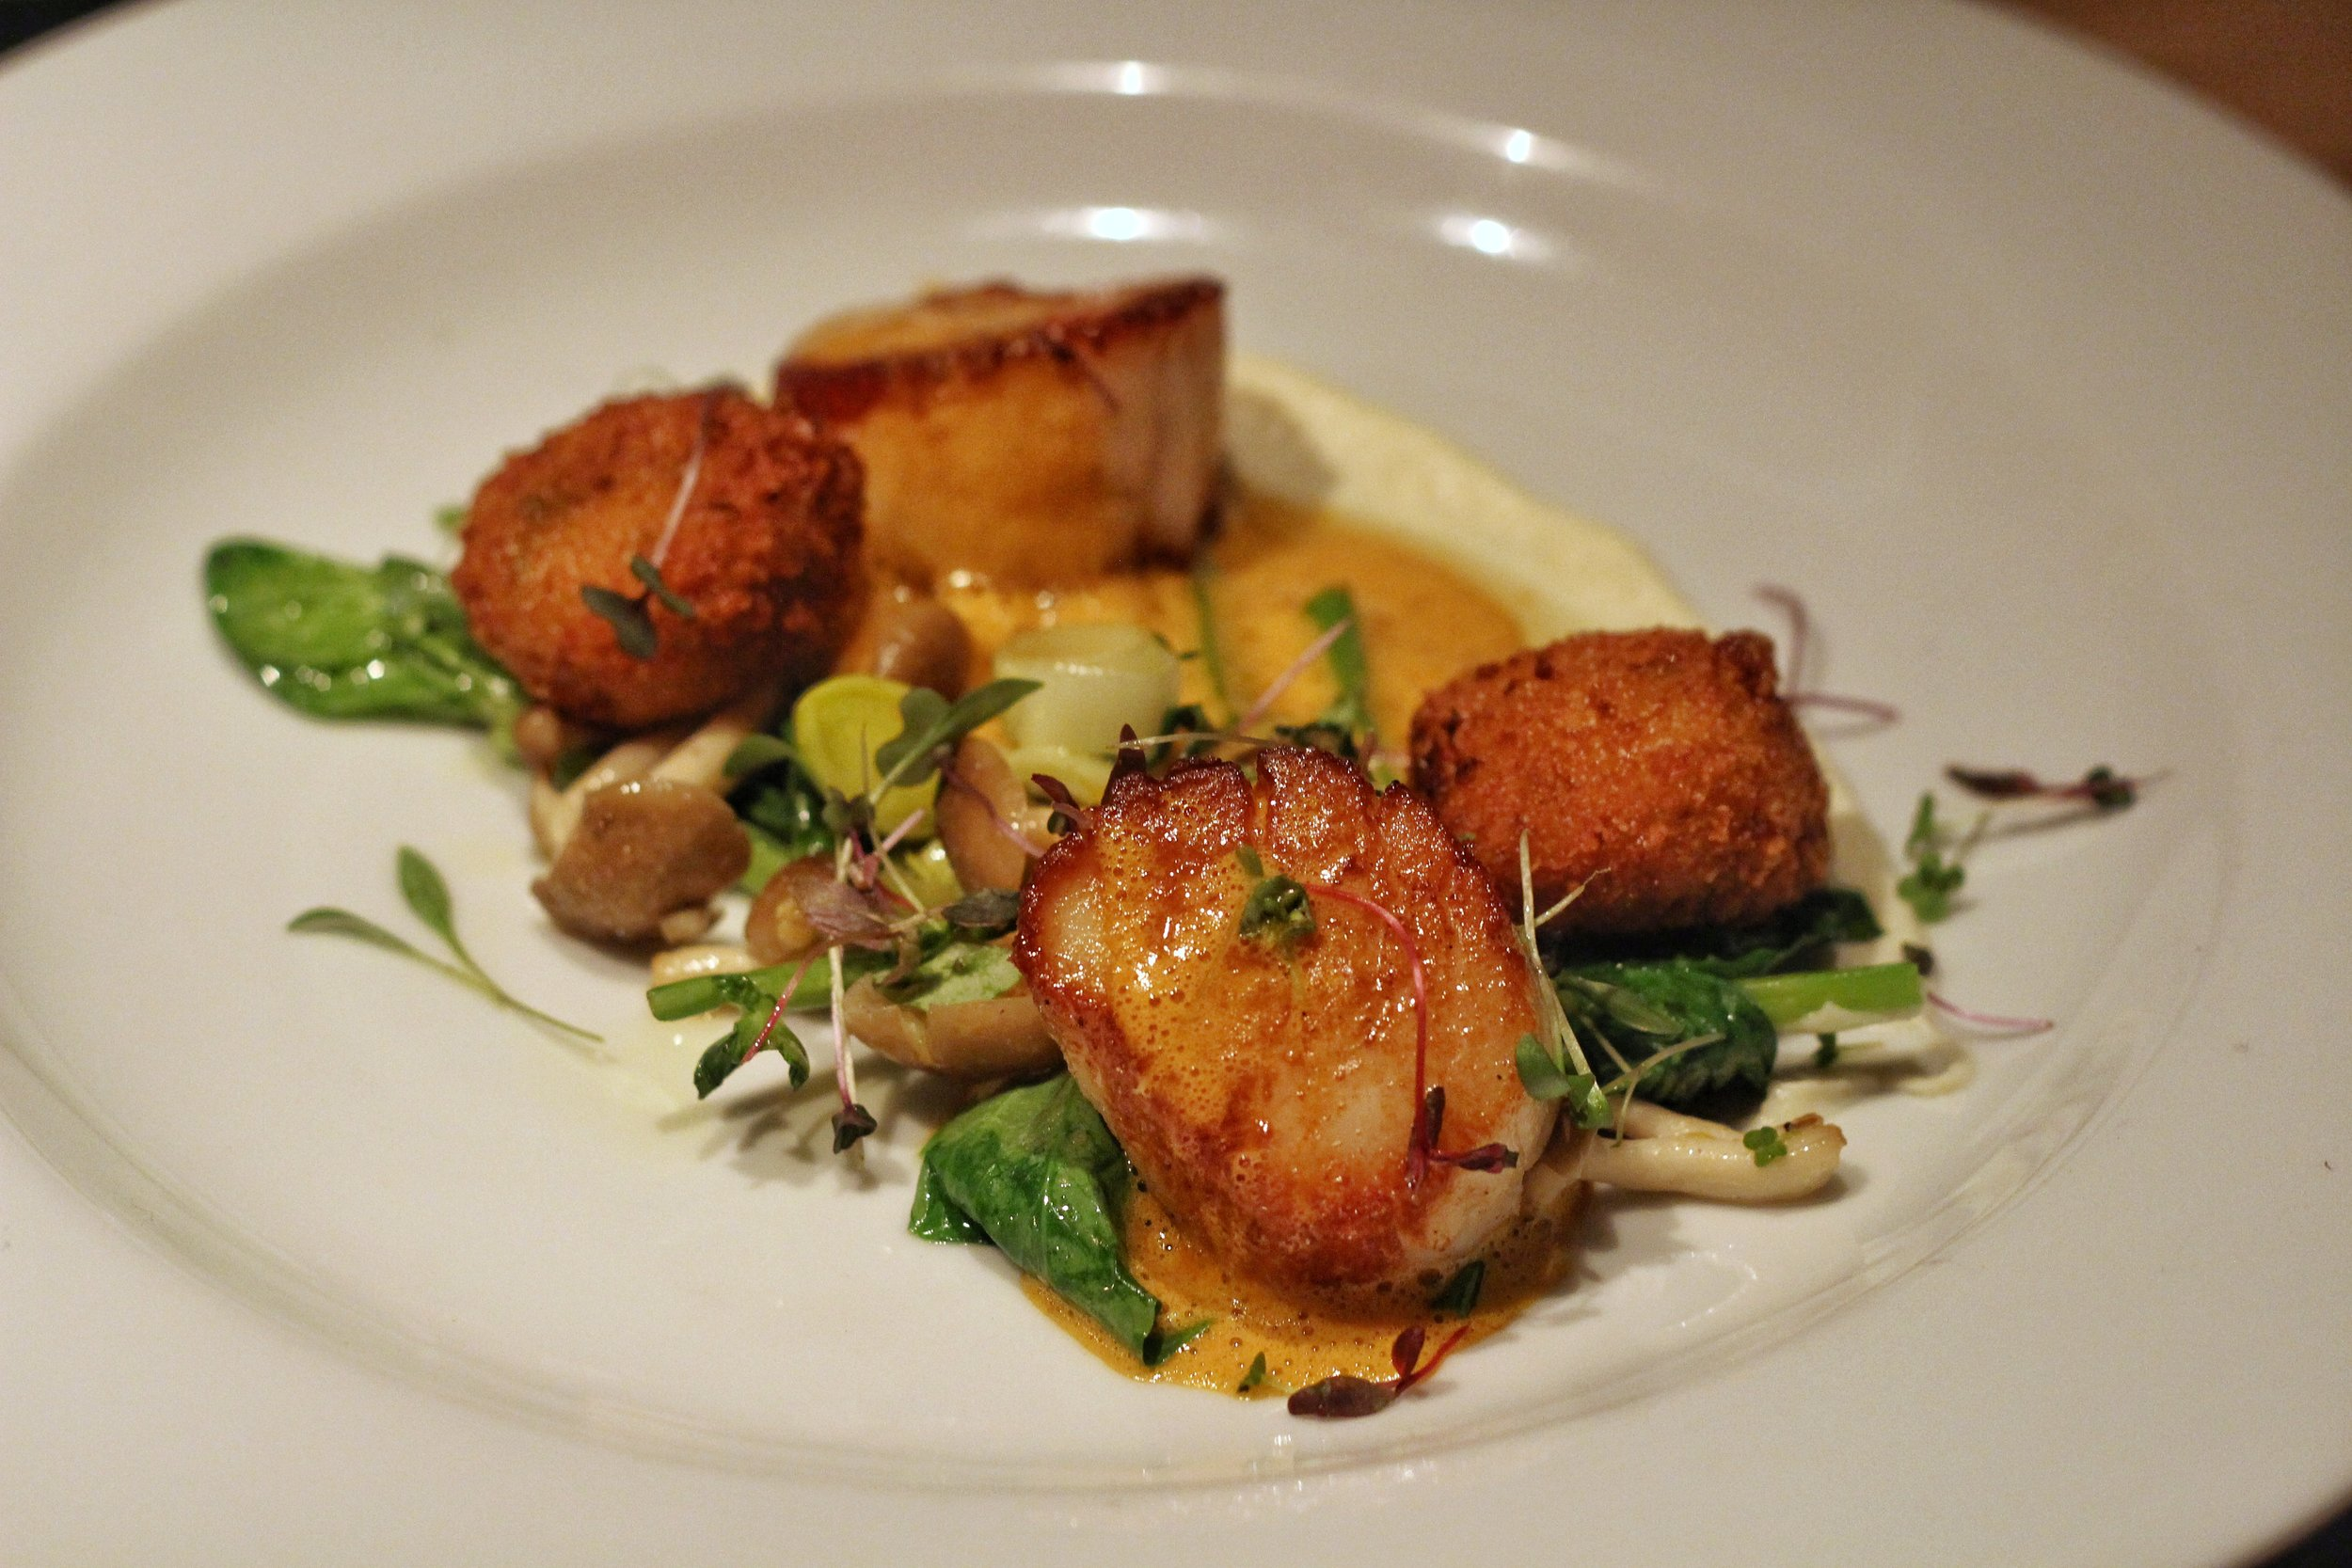 Seared Scallops  - crab potato croquettes, cauliflower puree, beech mushrooms, leeks, shellfish bisque